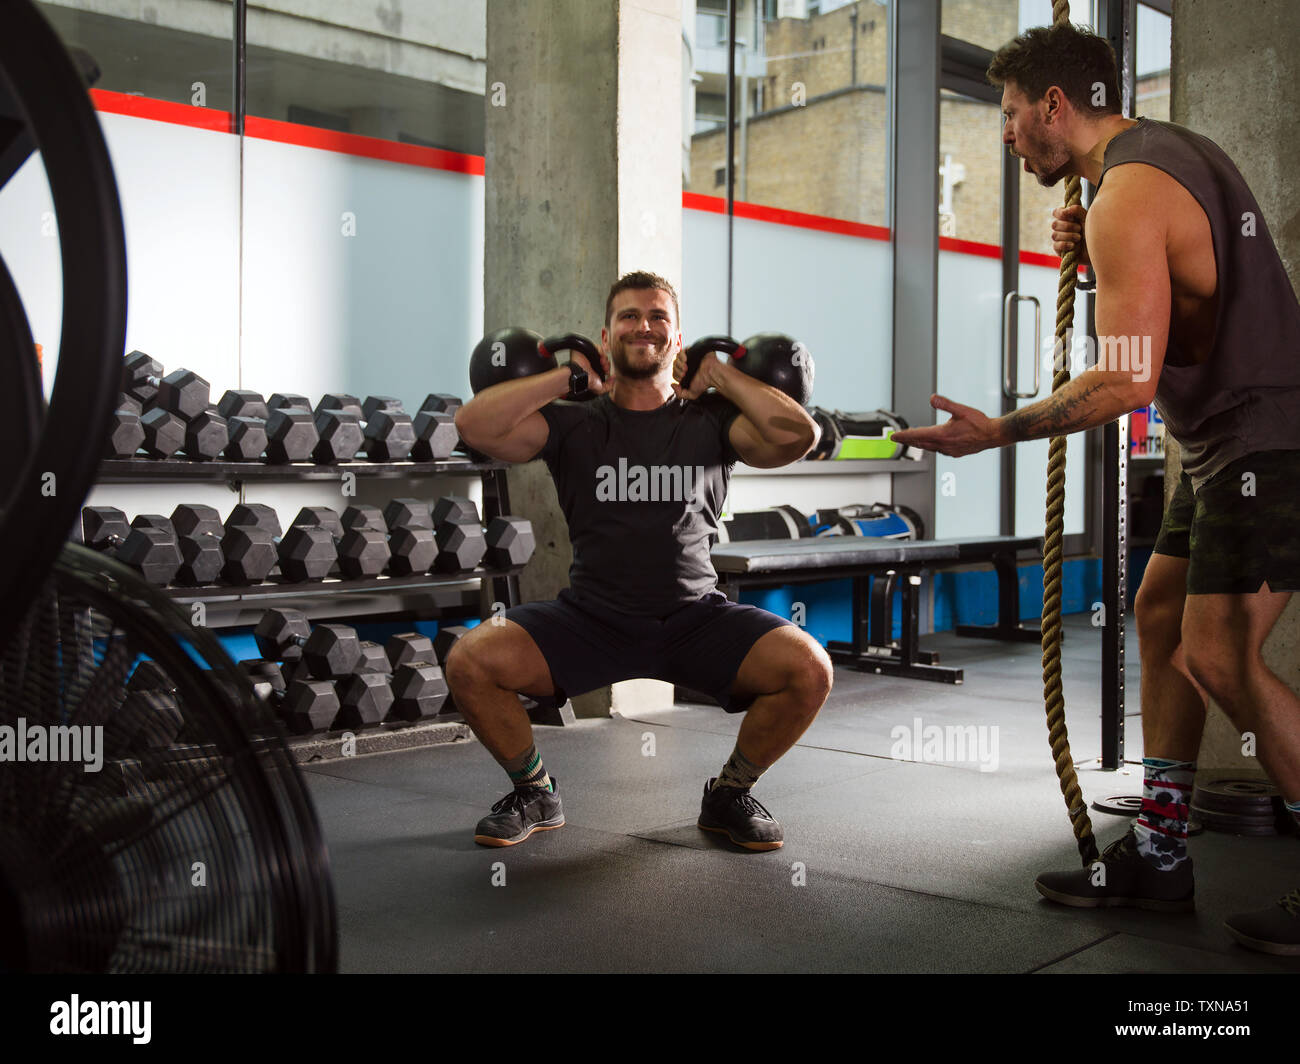 Man motivating friend doing squats, lifting kettlebells in gym - Stock Image